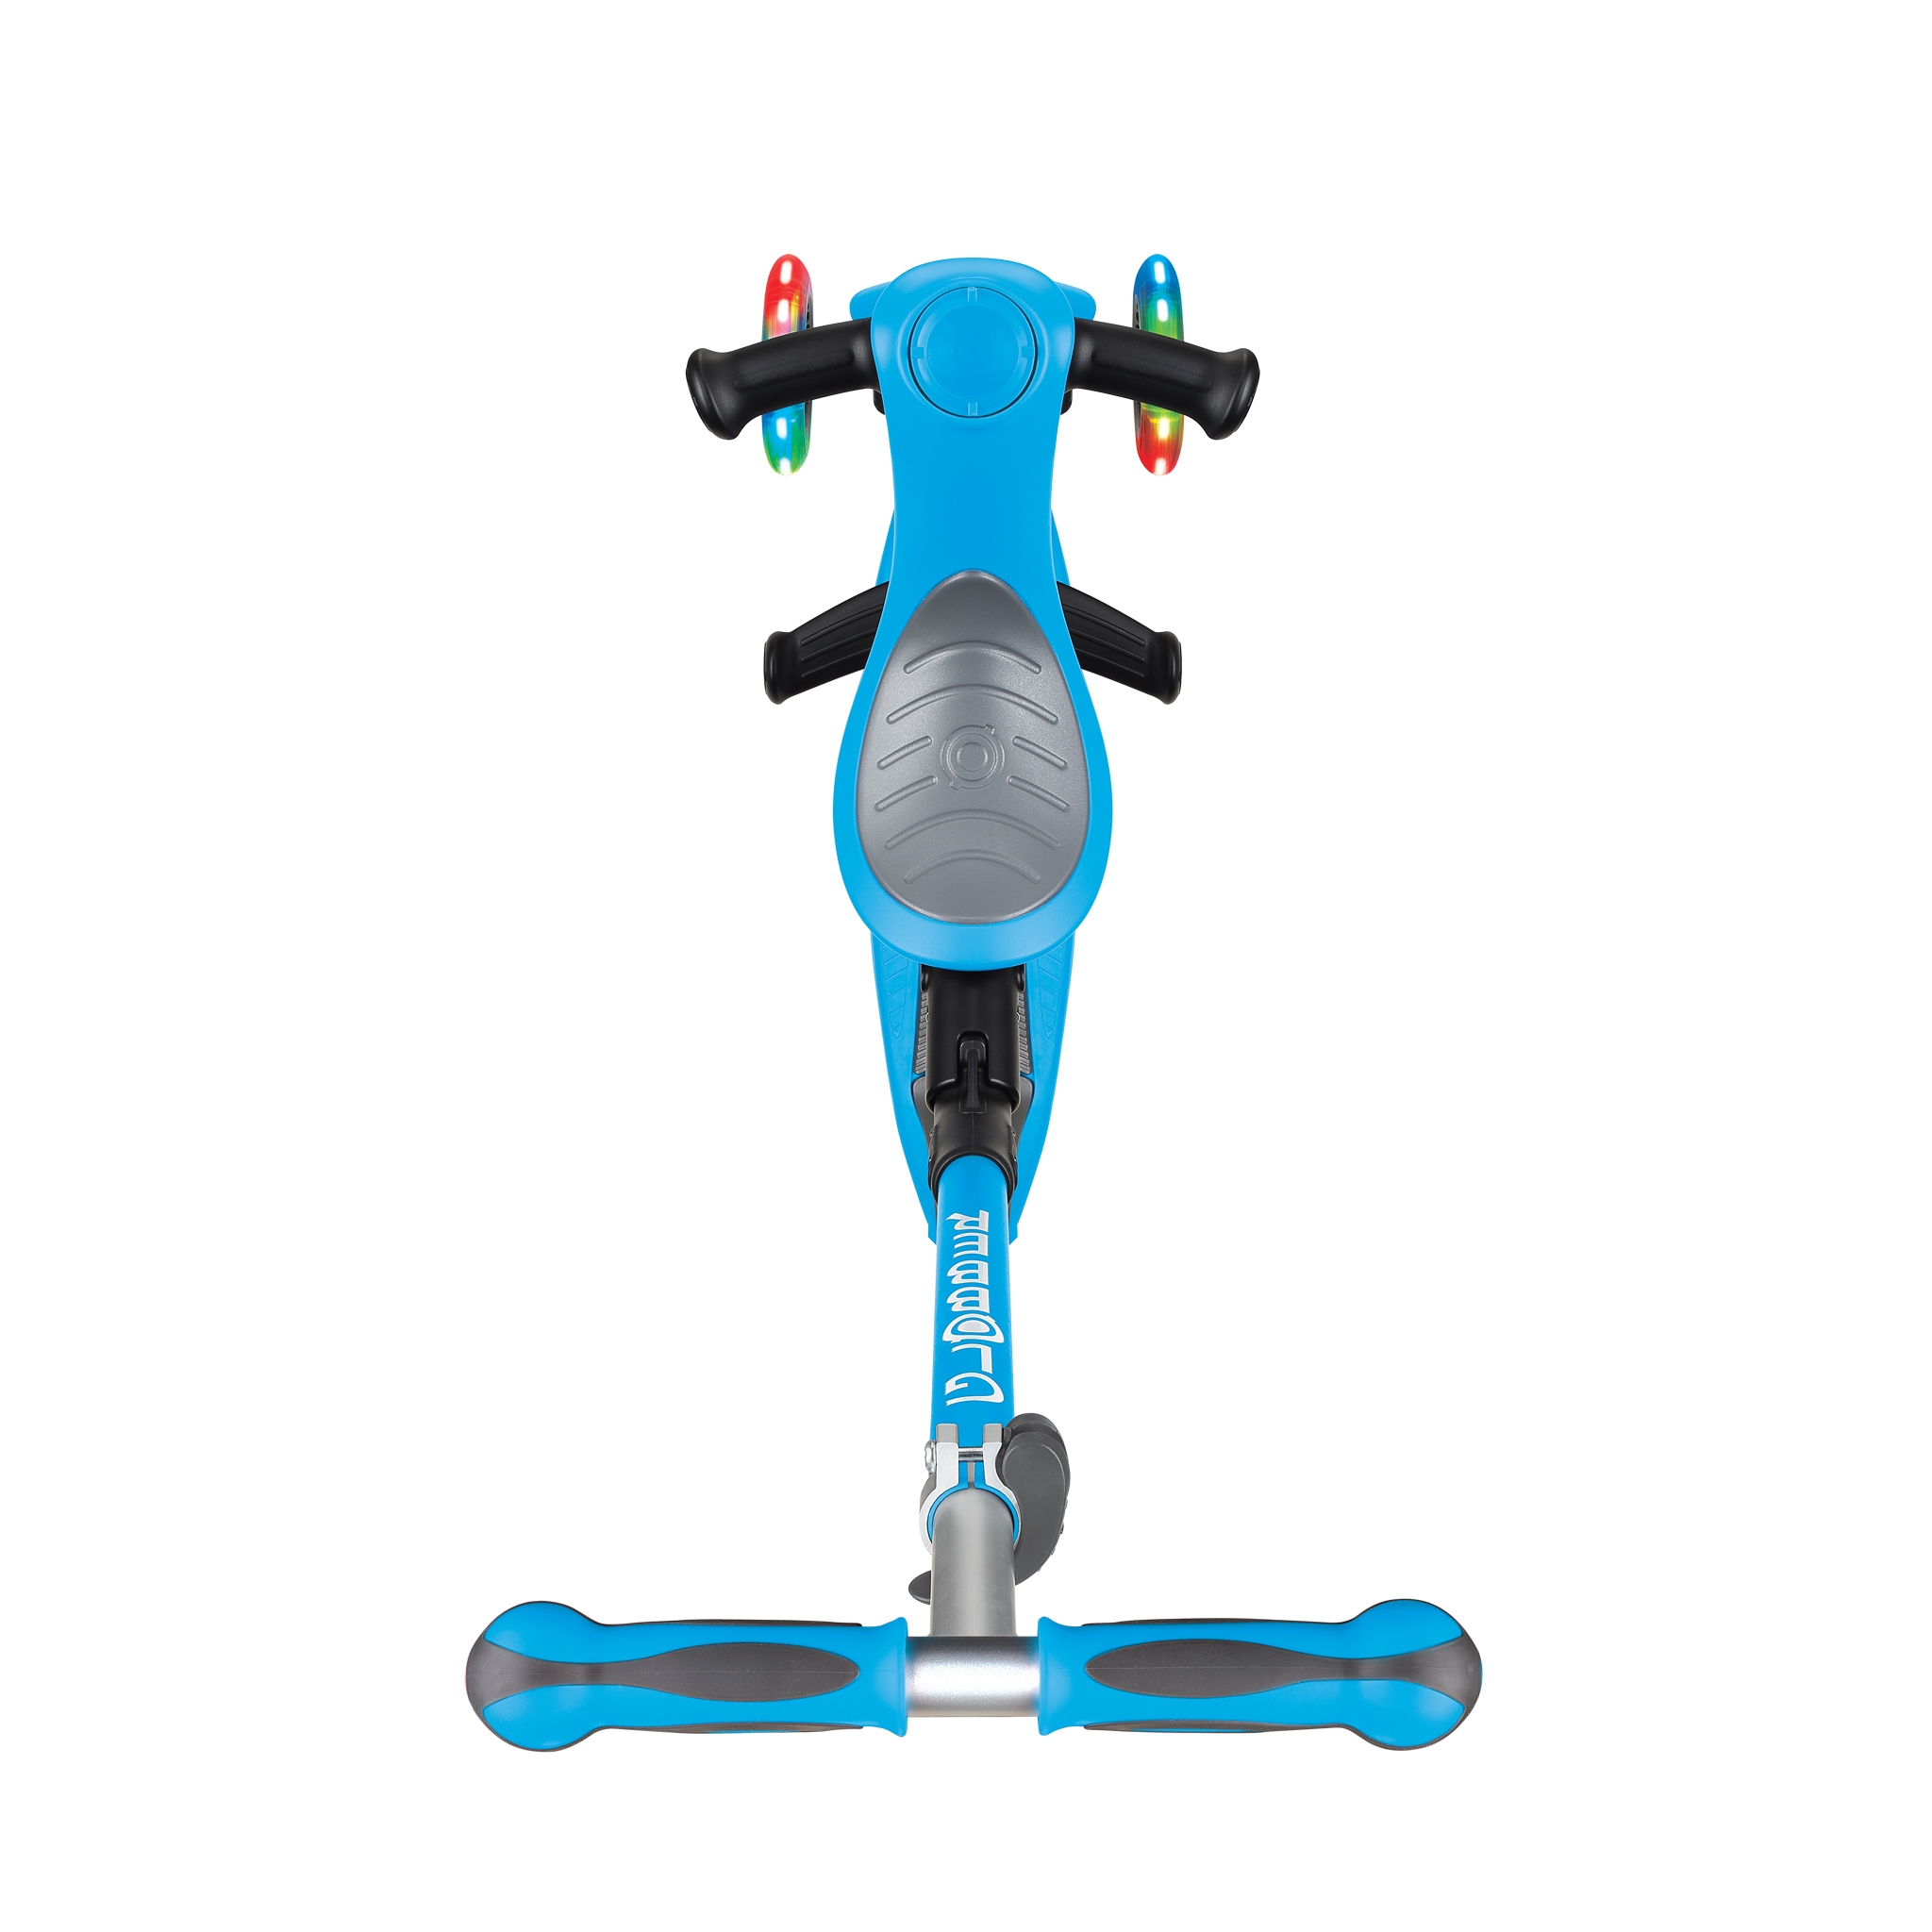 GO-UP-DELUXE-LIGHTS-ride-on-walking-bike-scooter-with-light-up-wheels-and-extra-wide-3-height-adjustable-seat-sky-blue 2